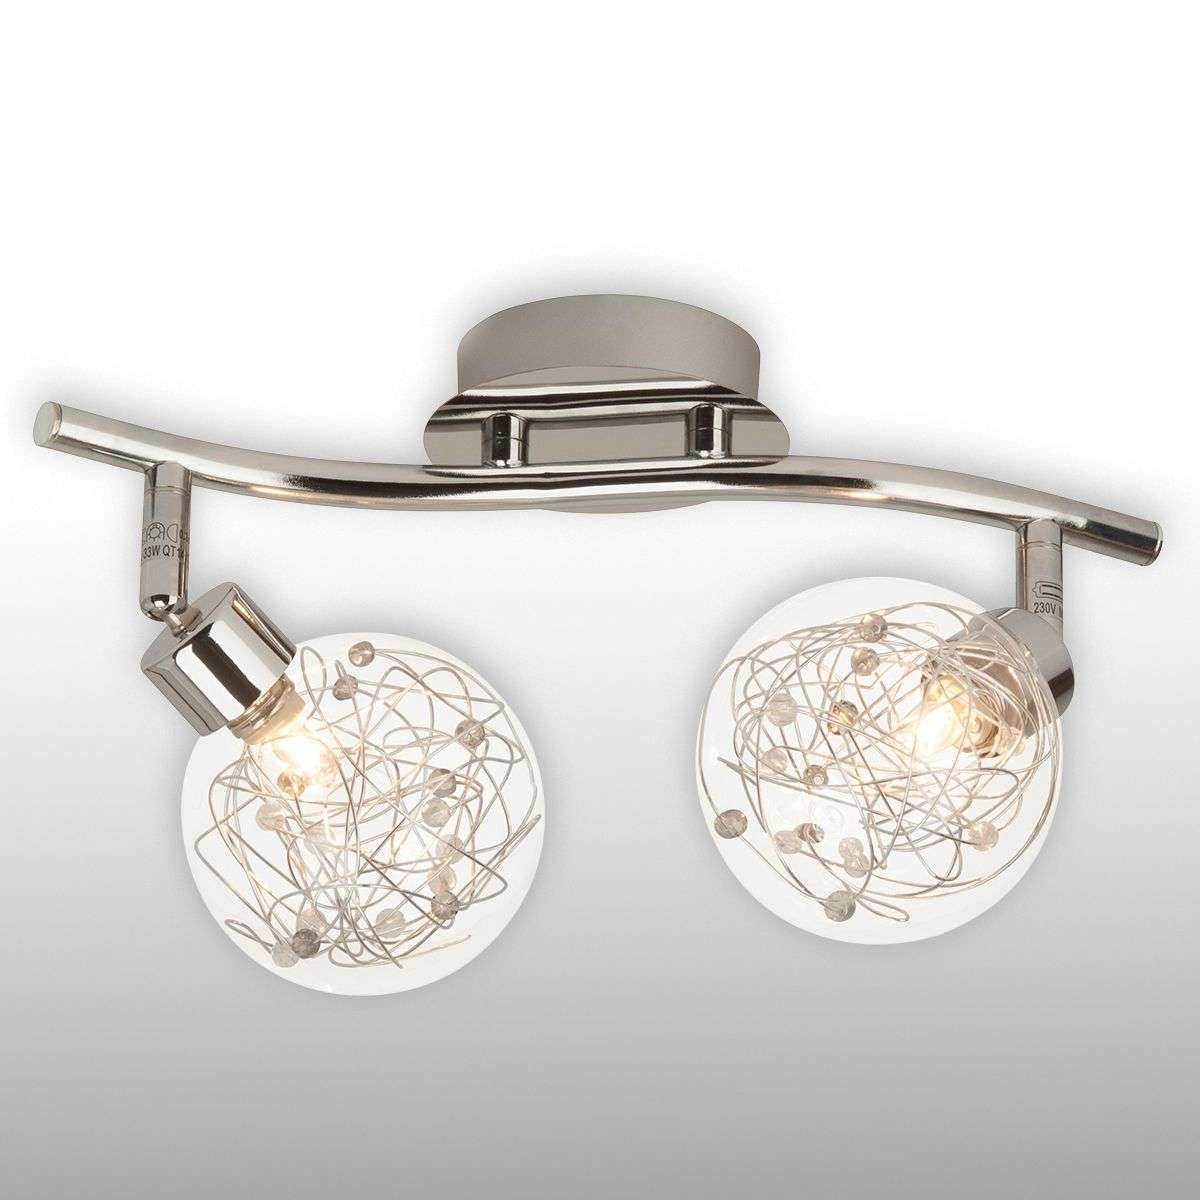 2-bulb ceiling light Joya-1509045-31